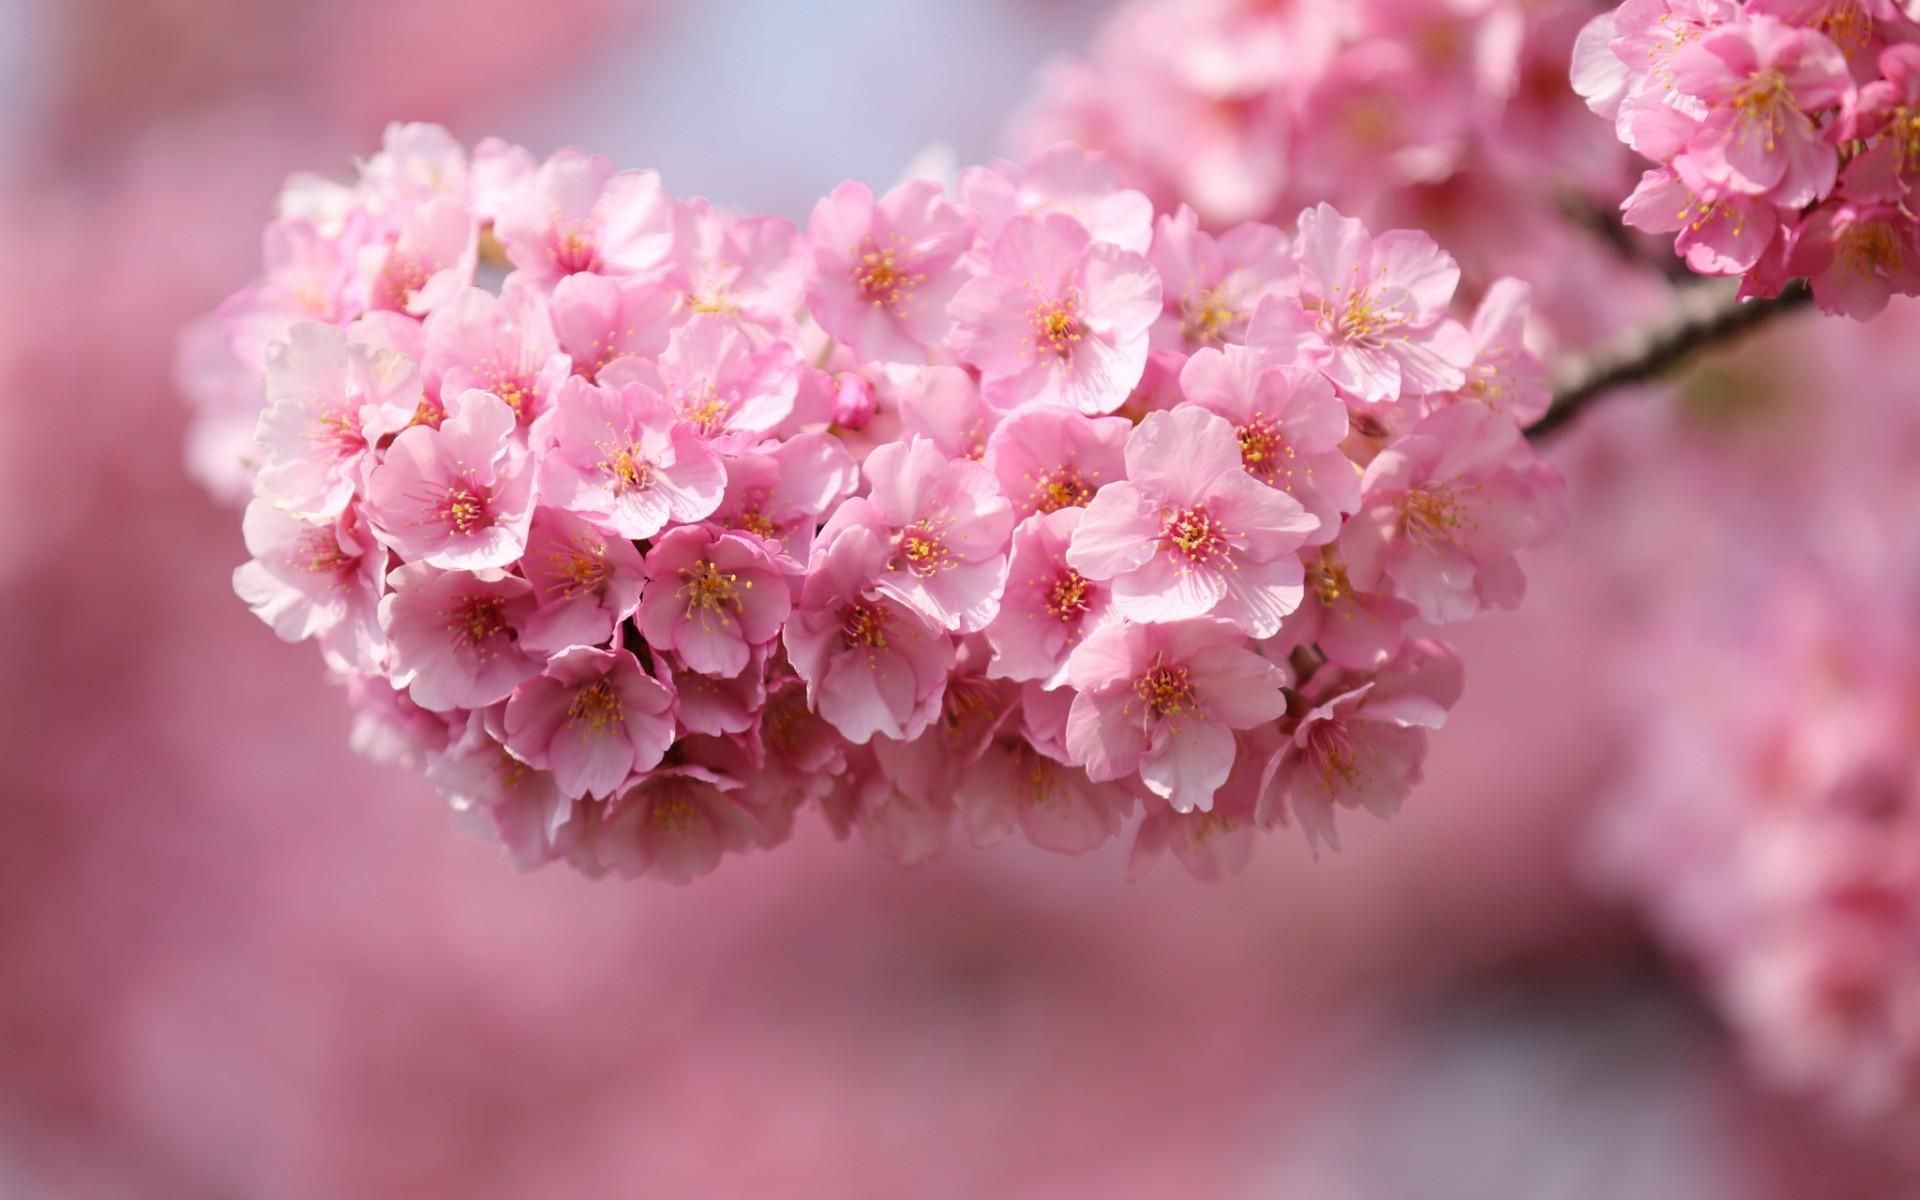 Flowers Blossom Pink Blossoms Hd Wallpapers Desktop Backgrounds Mobile Wallpapers 19 Pink Flowers Wallpaper Flower Desktop Wallpaper Beautiful Pink Flowers